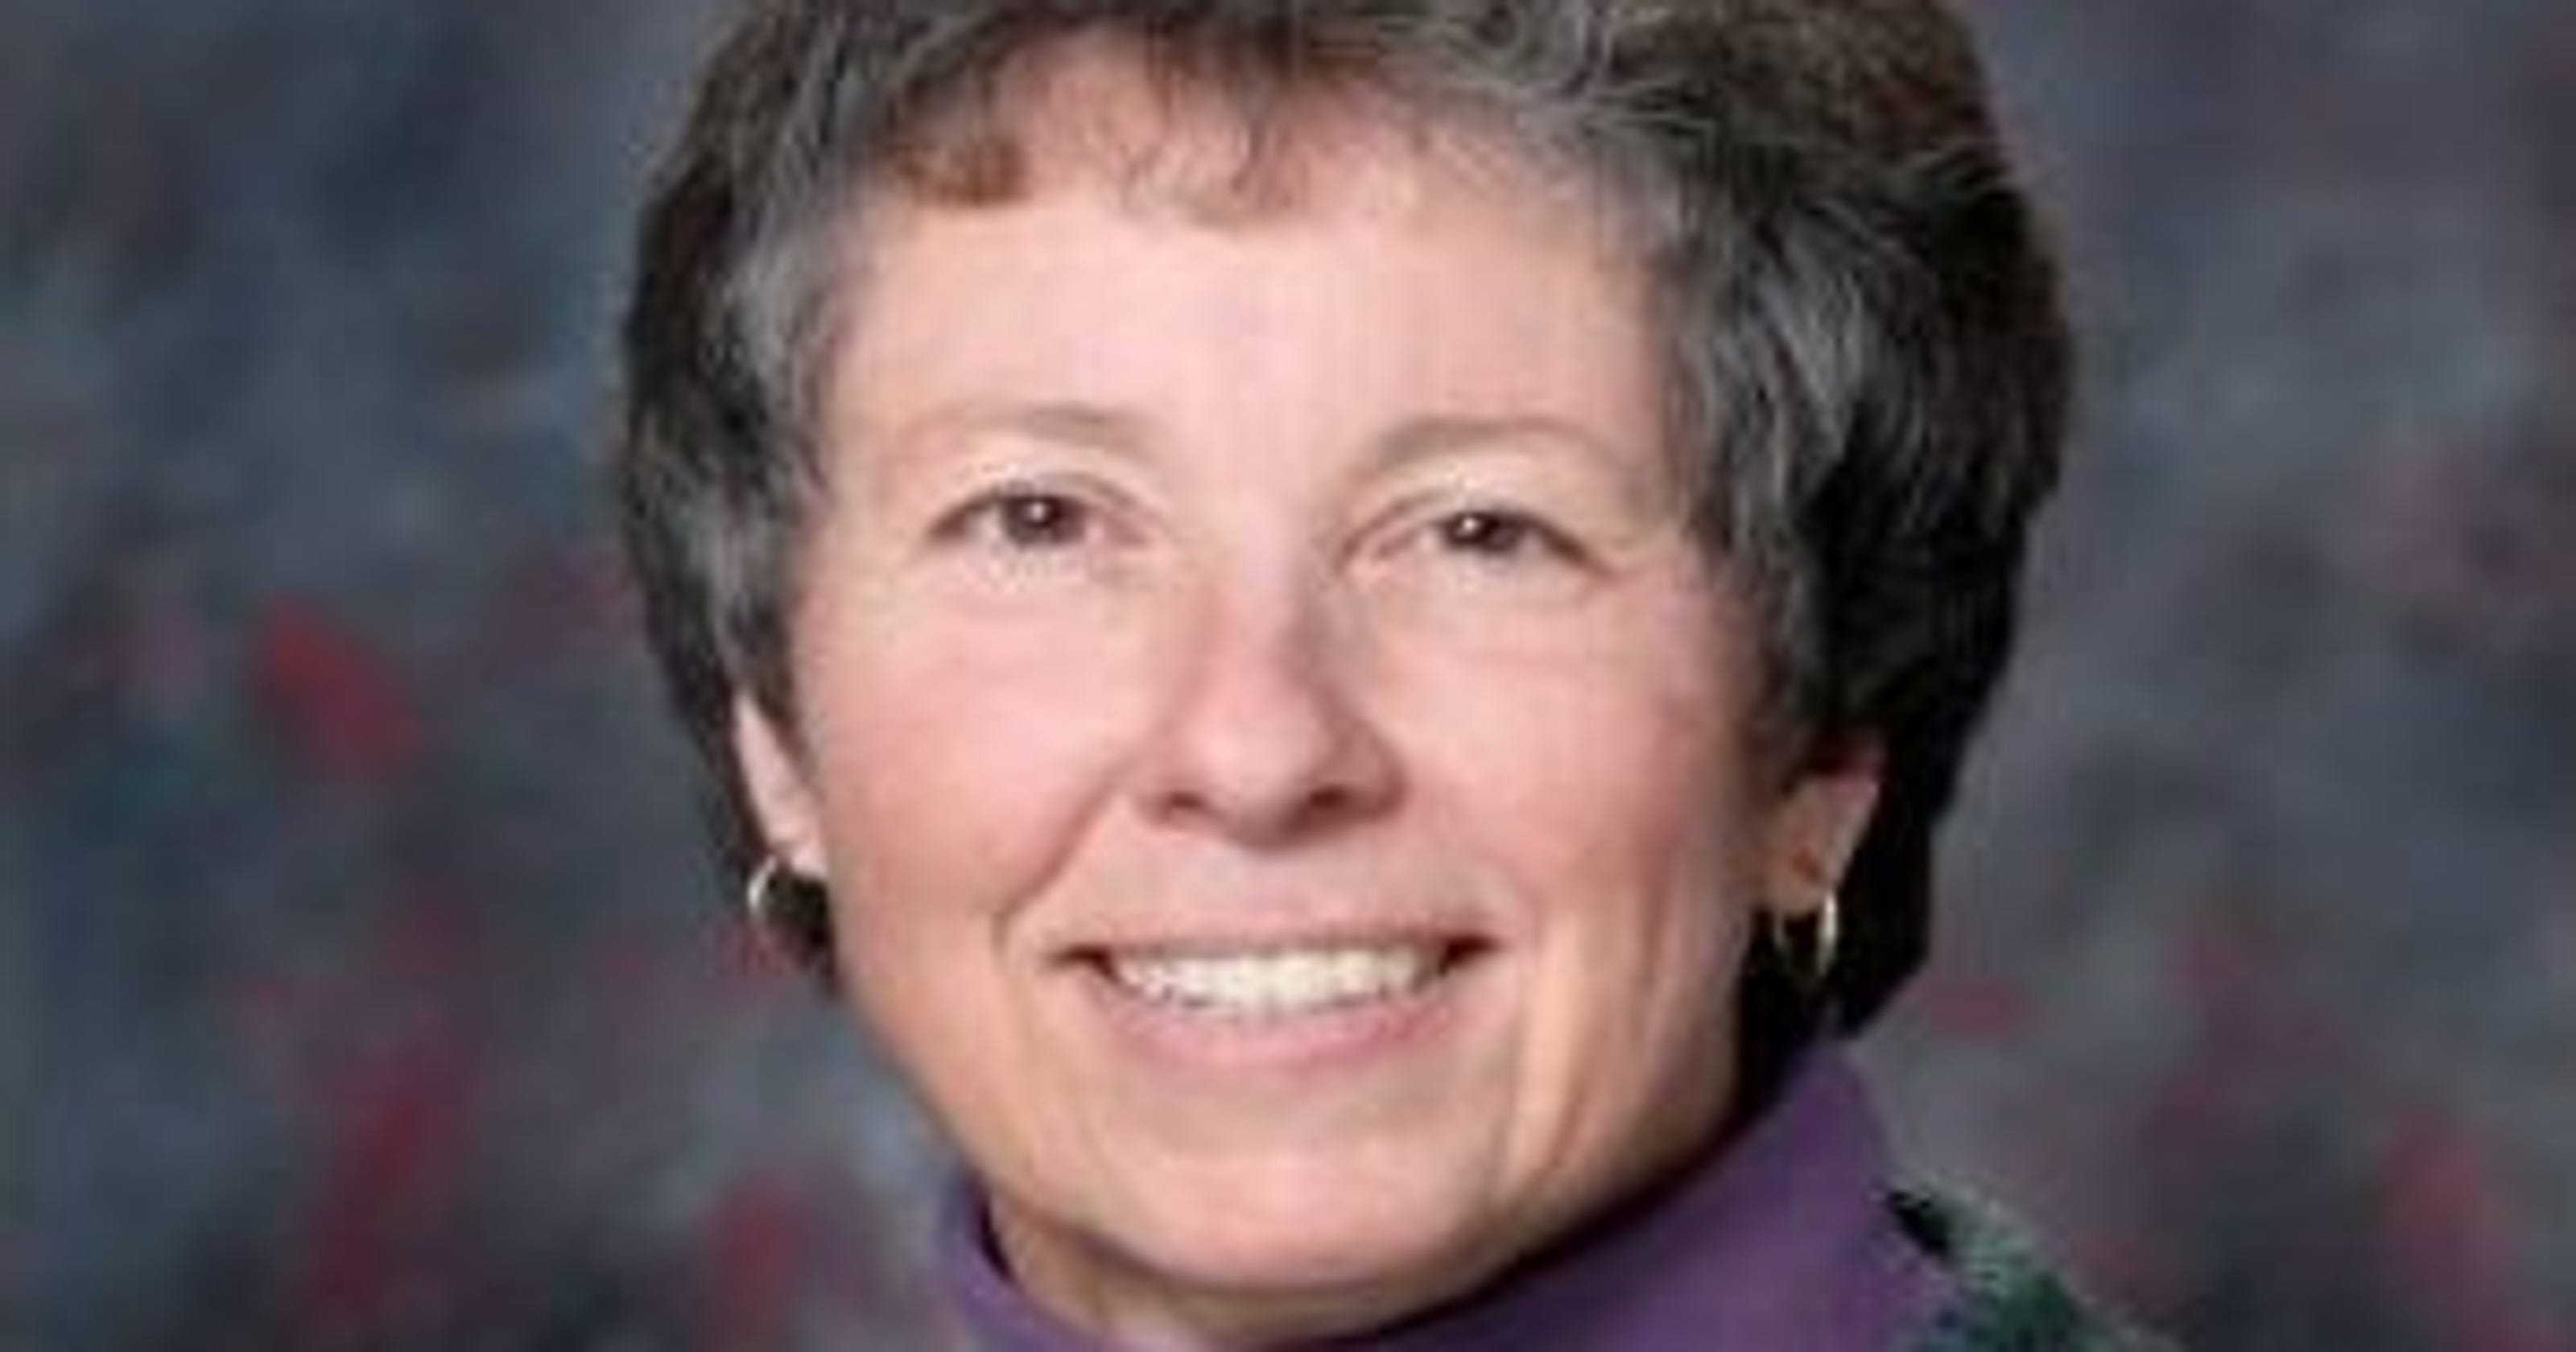 MSU prof's relationship with former student not a policy